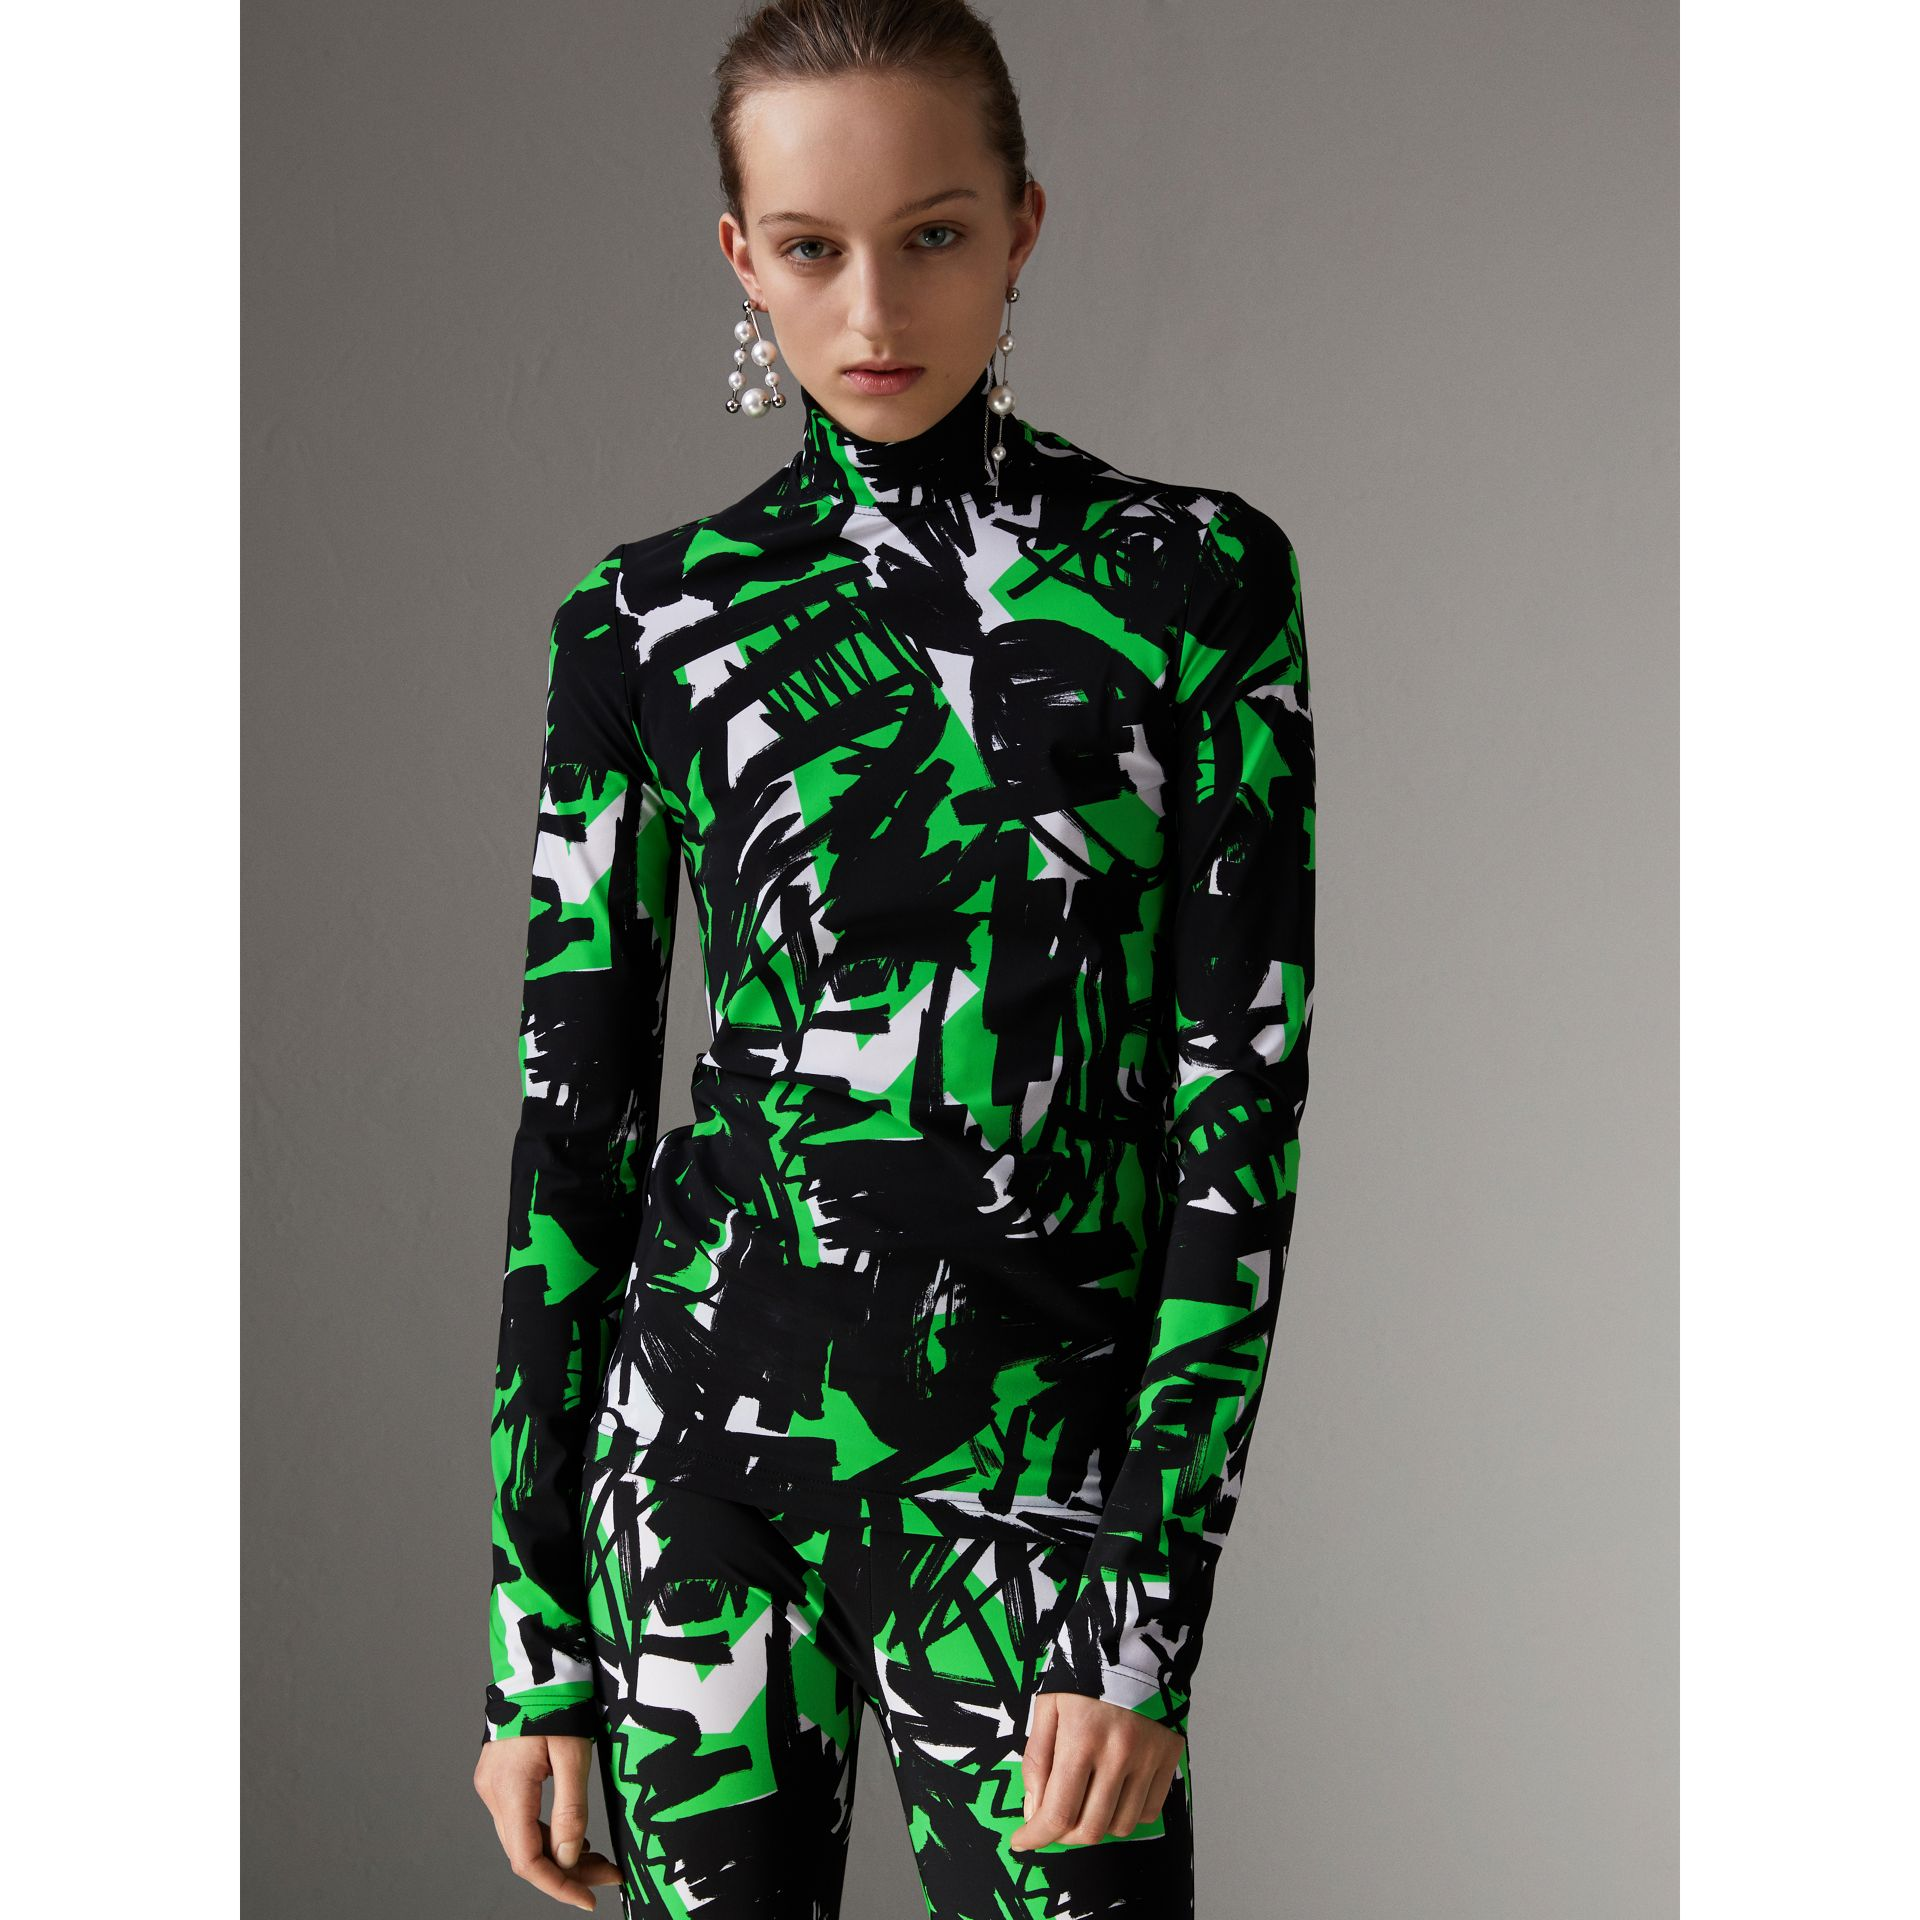 Graffiti Print Stretch Jersey Top in Neon Green - Women | Burberry - gallery image 4